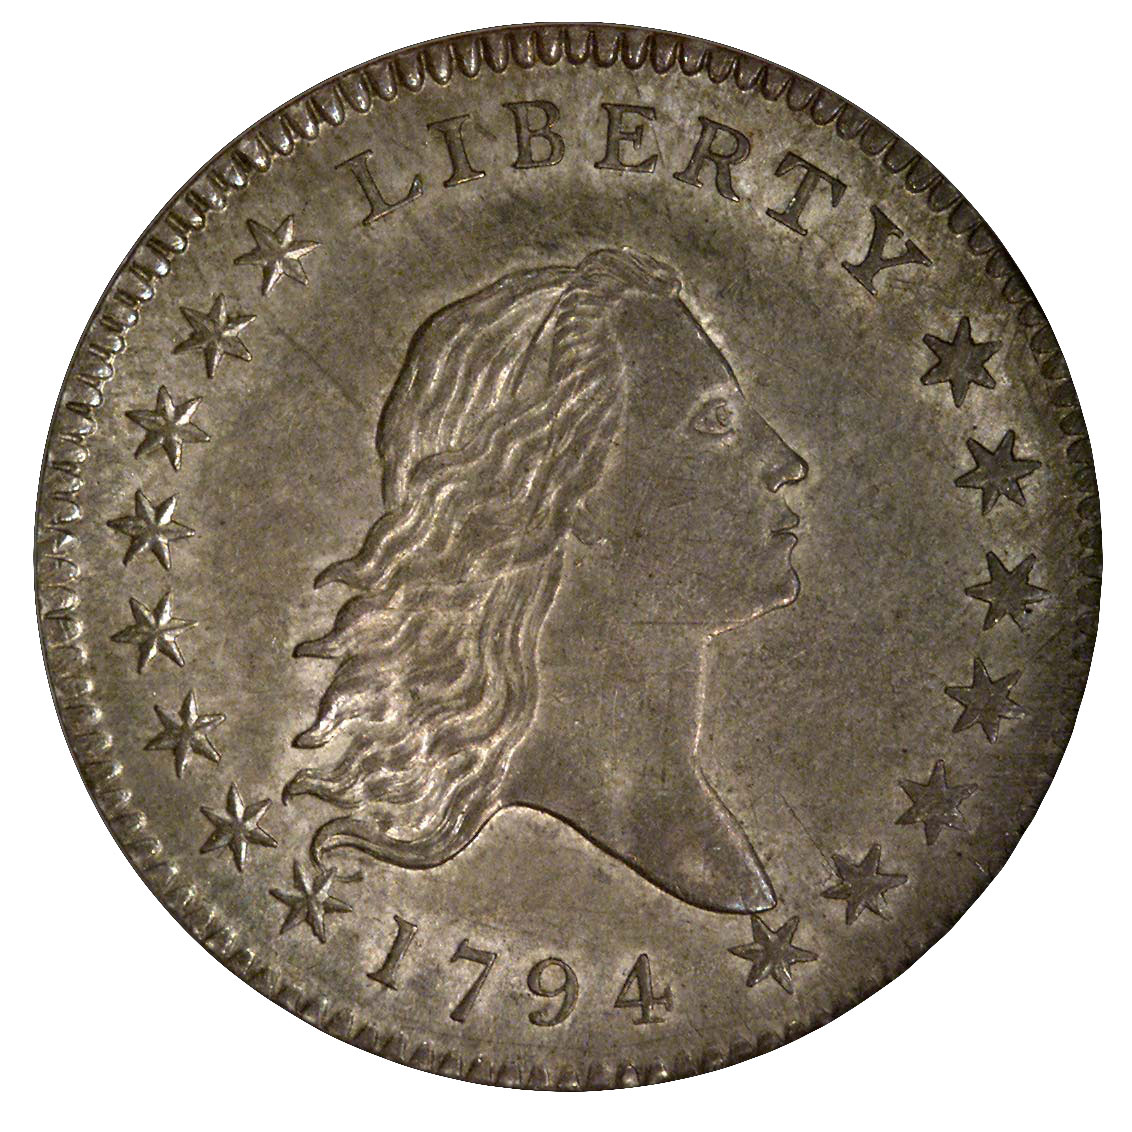 Flowing-Hair-Half-Dollars-Obverse.jpg